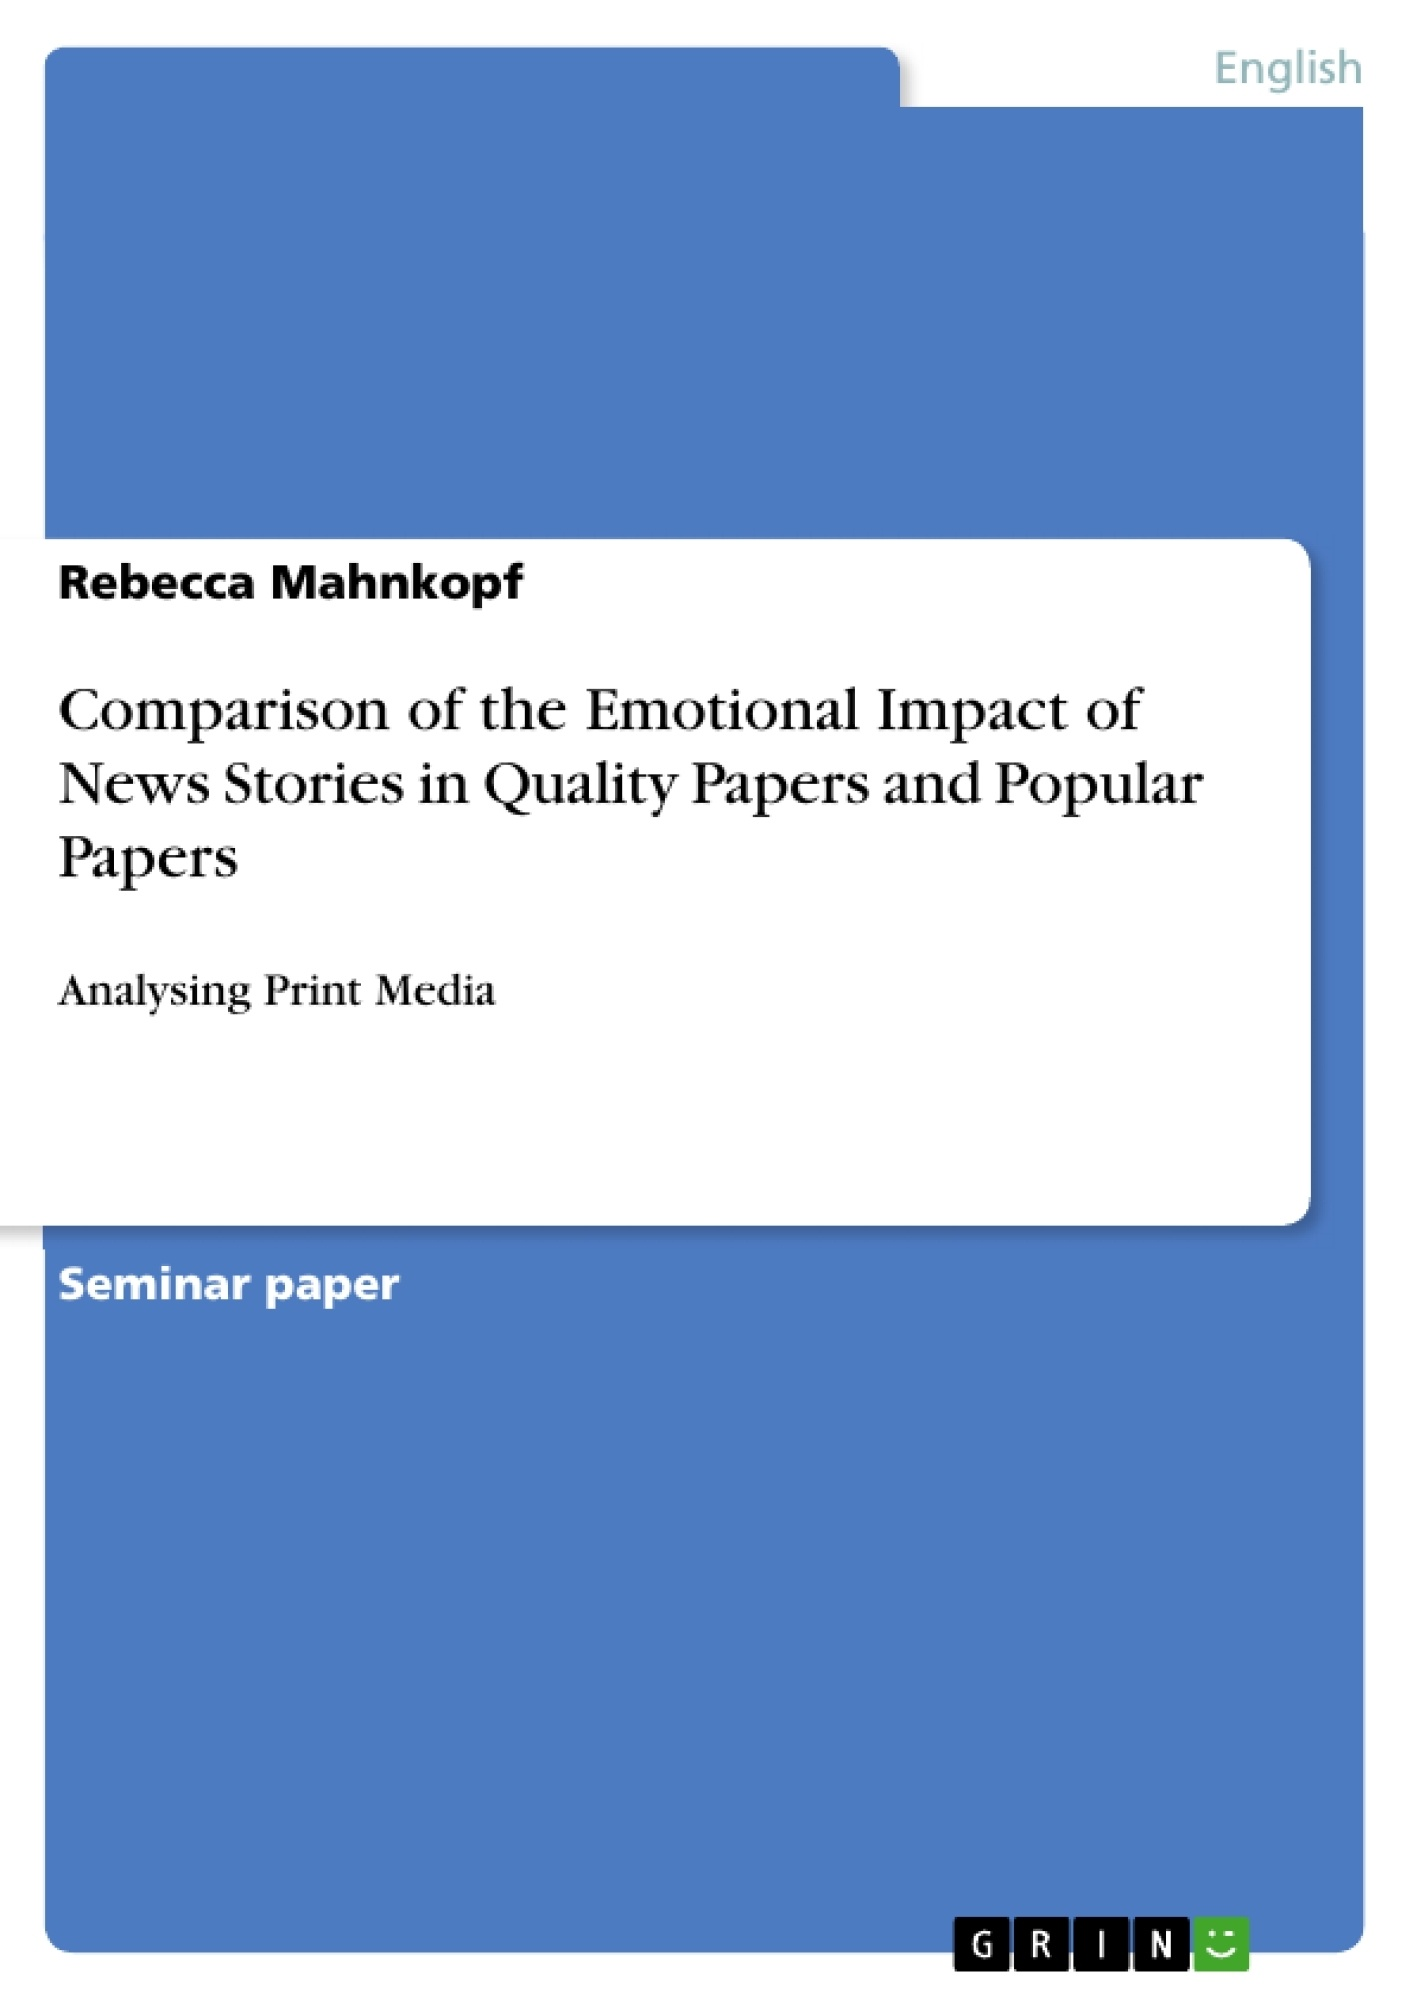 Title: Comparison of the Emotional Impact of News Stories in Quality Papers and Popular Papers